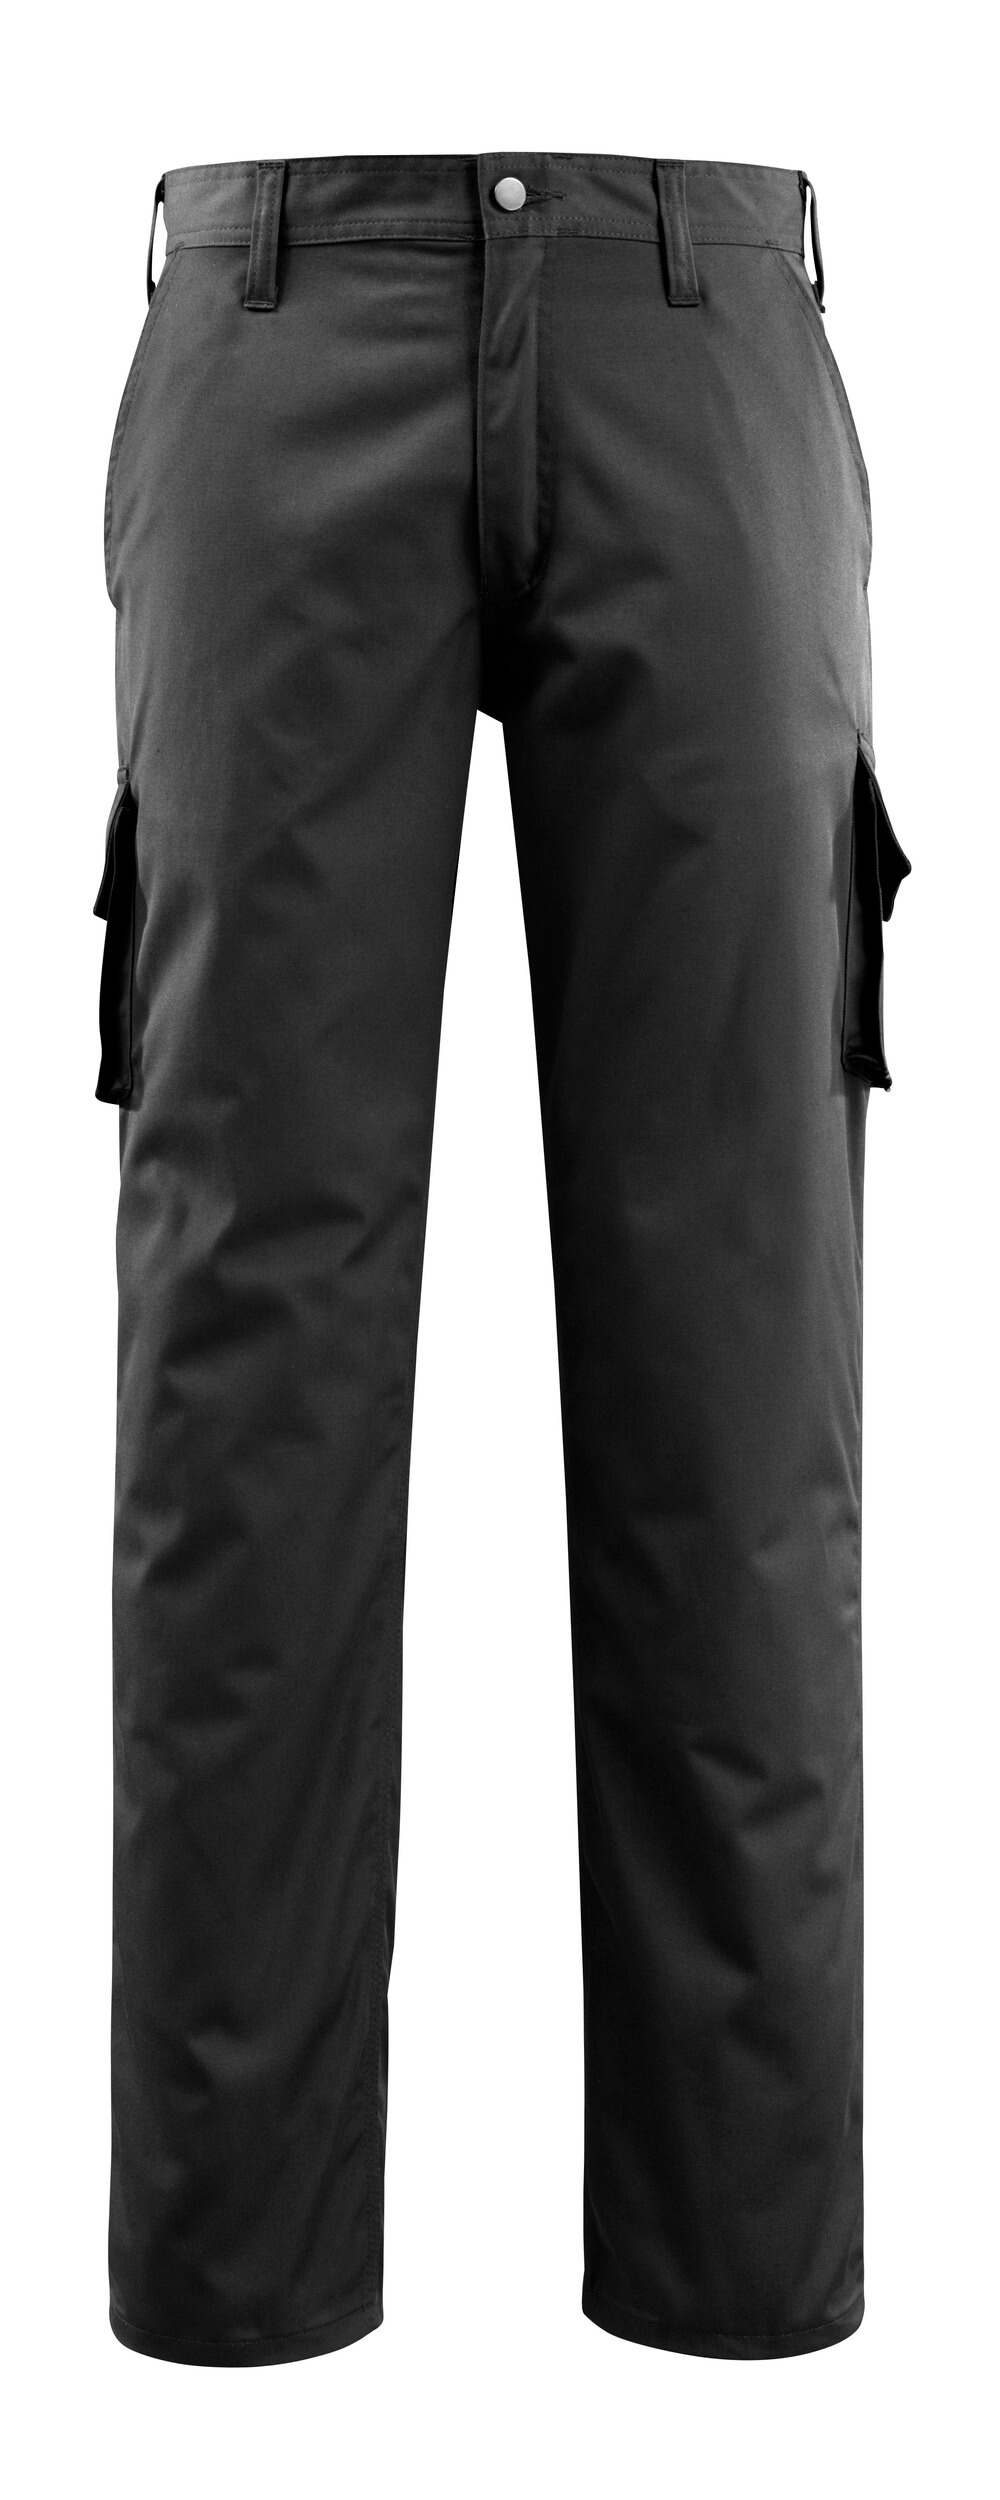 14779-850-09 Trousers with thigh pockets - black